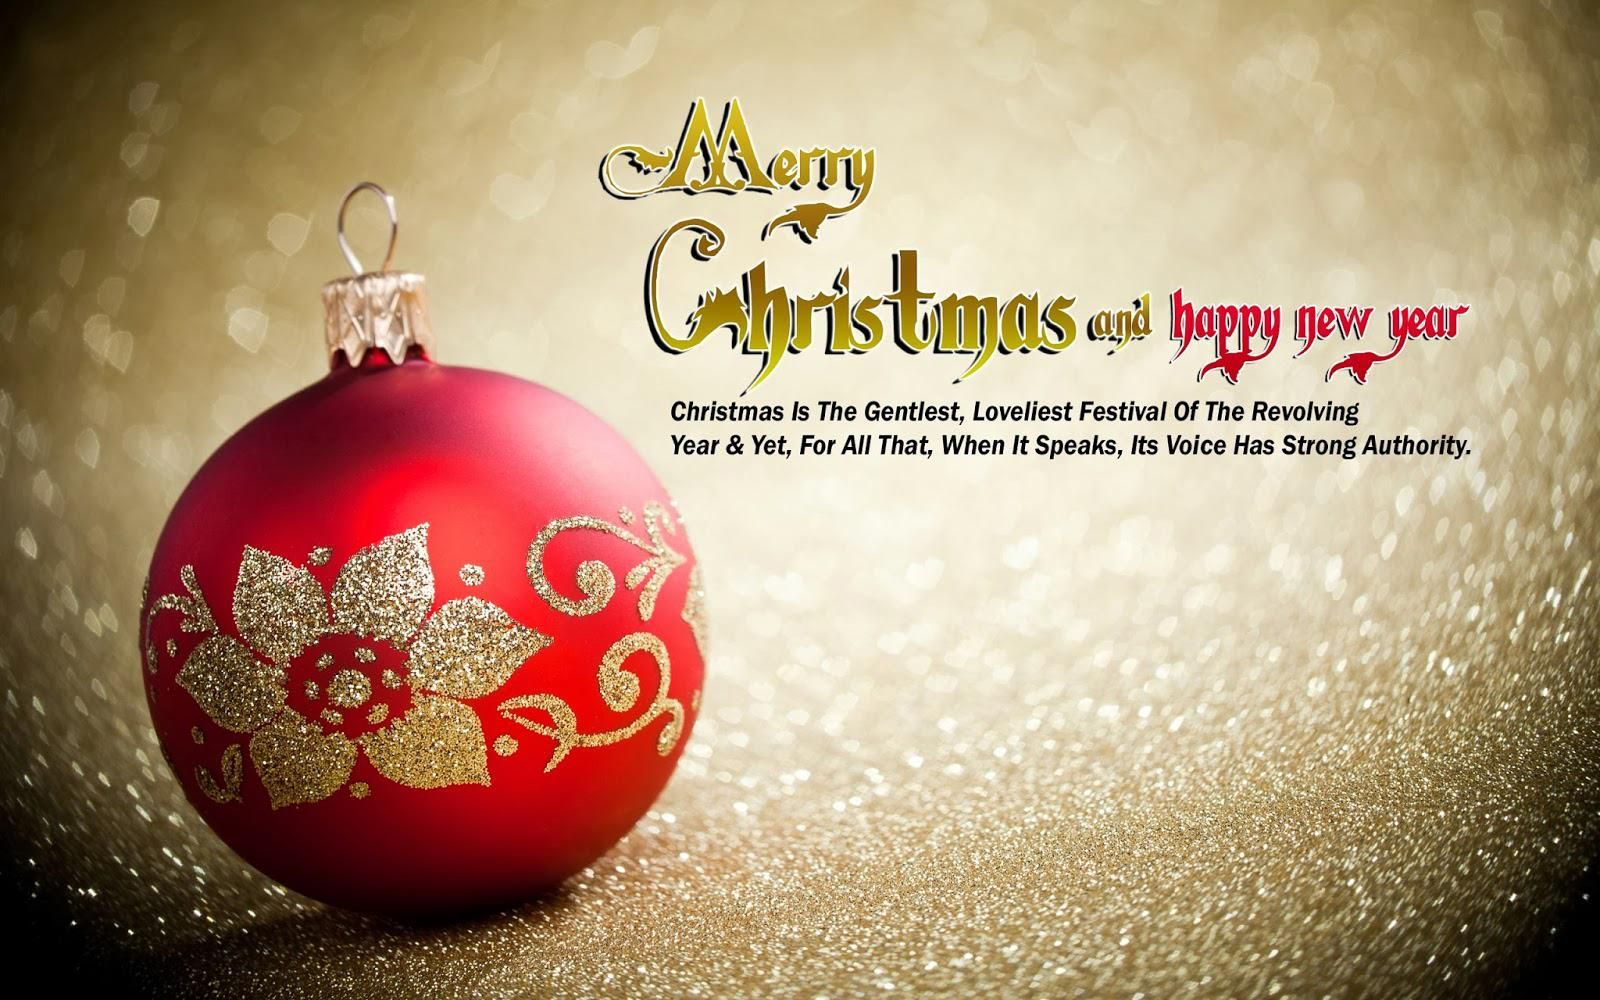 50 Beautiful Merry Christmas And Happy New Year Pictures Merrychristmaspictures Merrychristmasandhappynewyearpictures Happynewyear2016